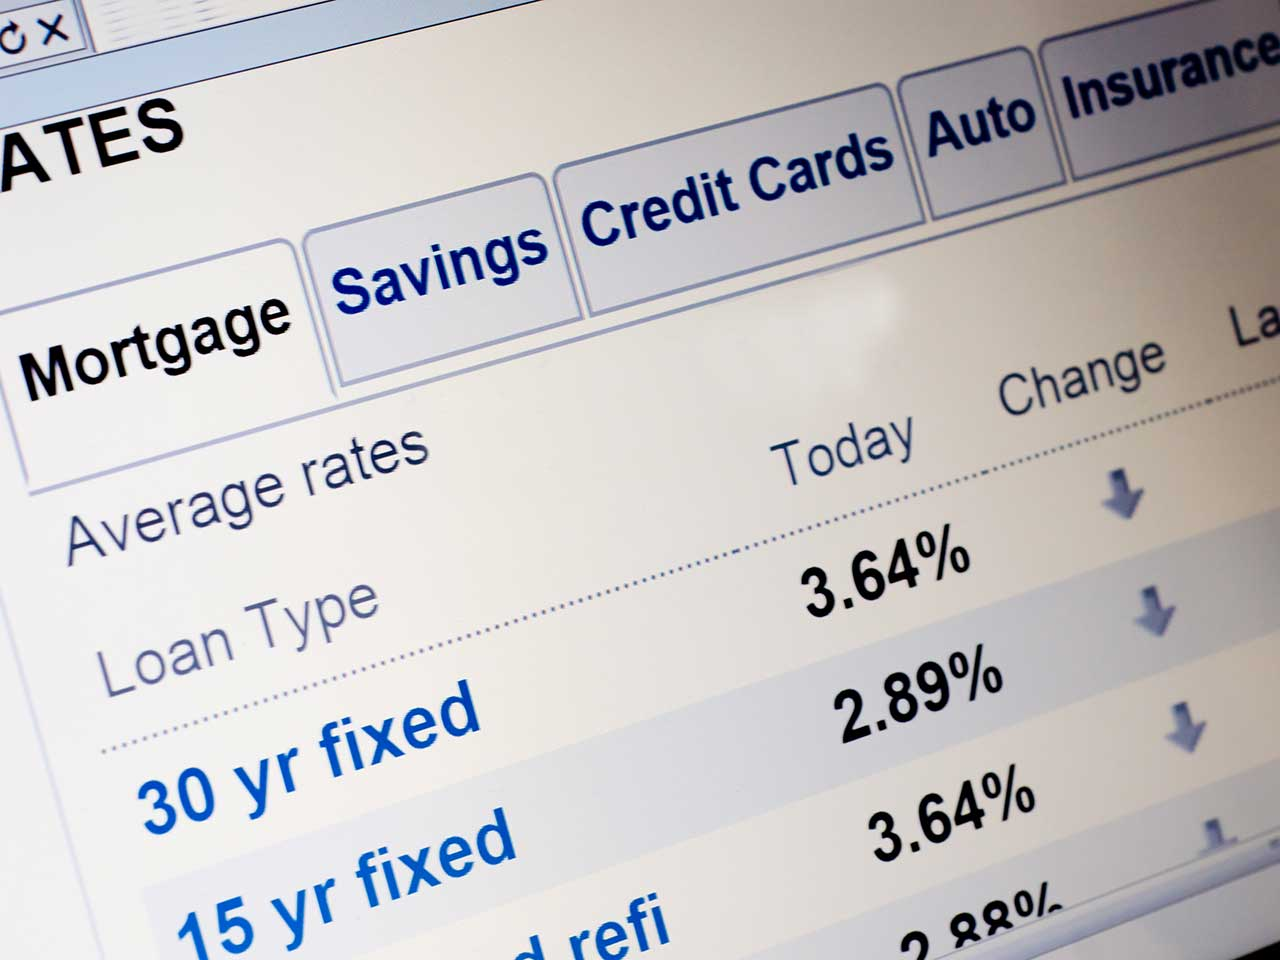 Mortgage rates on a variety of loan types